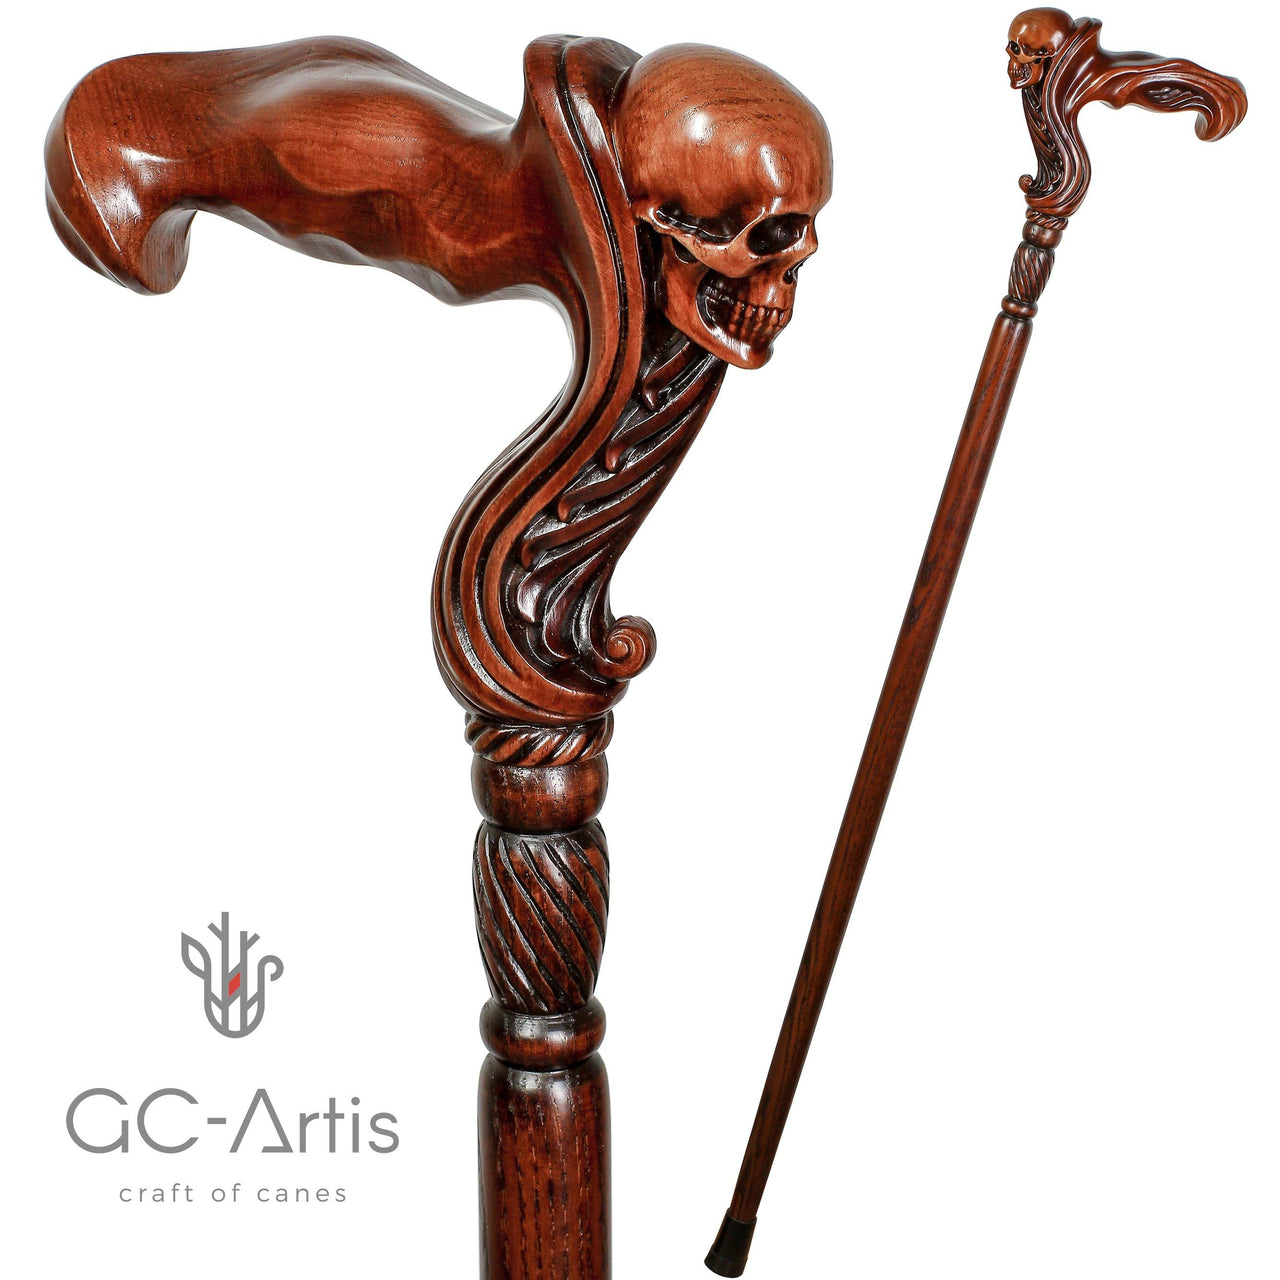 Skull Head Cane Wooden Walking Stick Anatomic Grip - GC-Artis Walking Sticks Canes